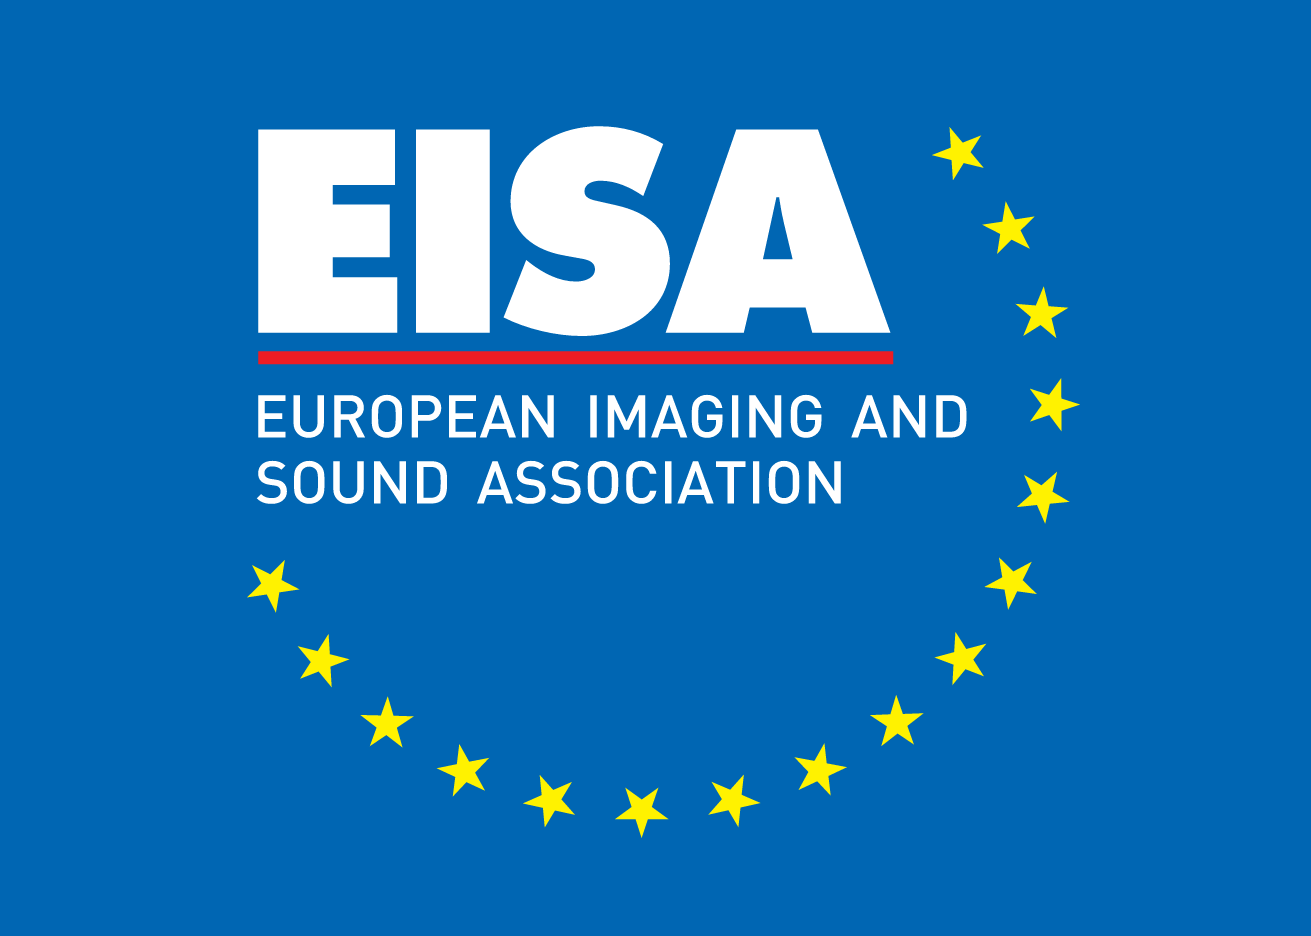 Eisa awards logo